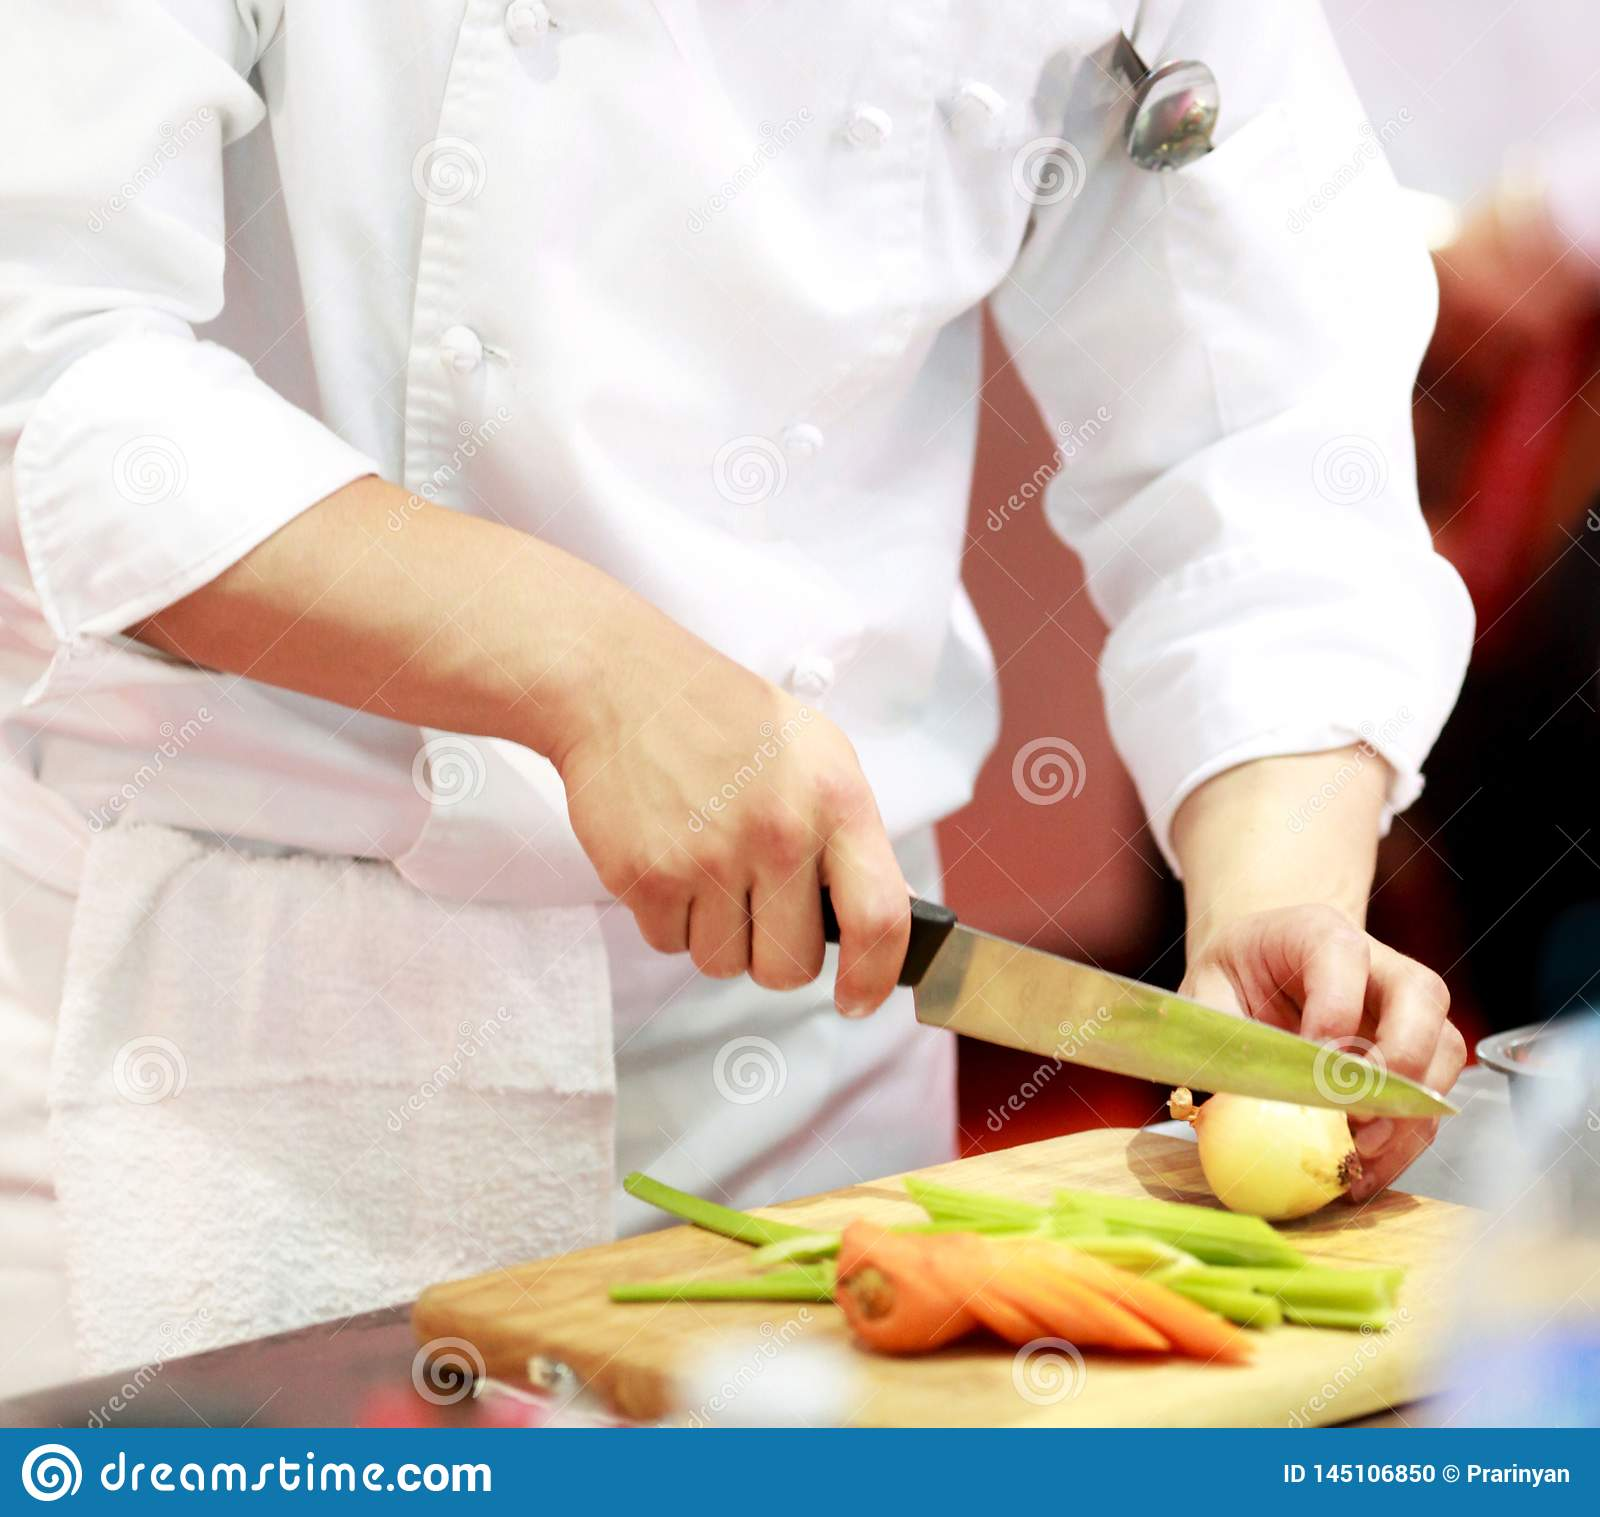 Chef Preparing Food Meal In The Kitchen Cooking Decorating Dish Stock Photo Image Of 145106850